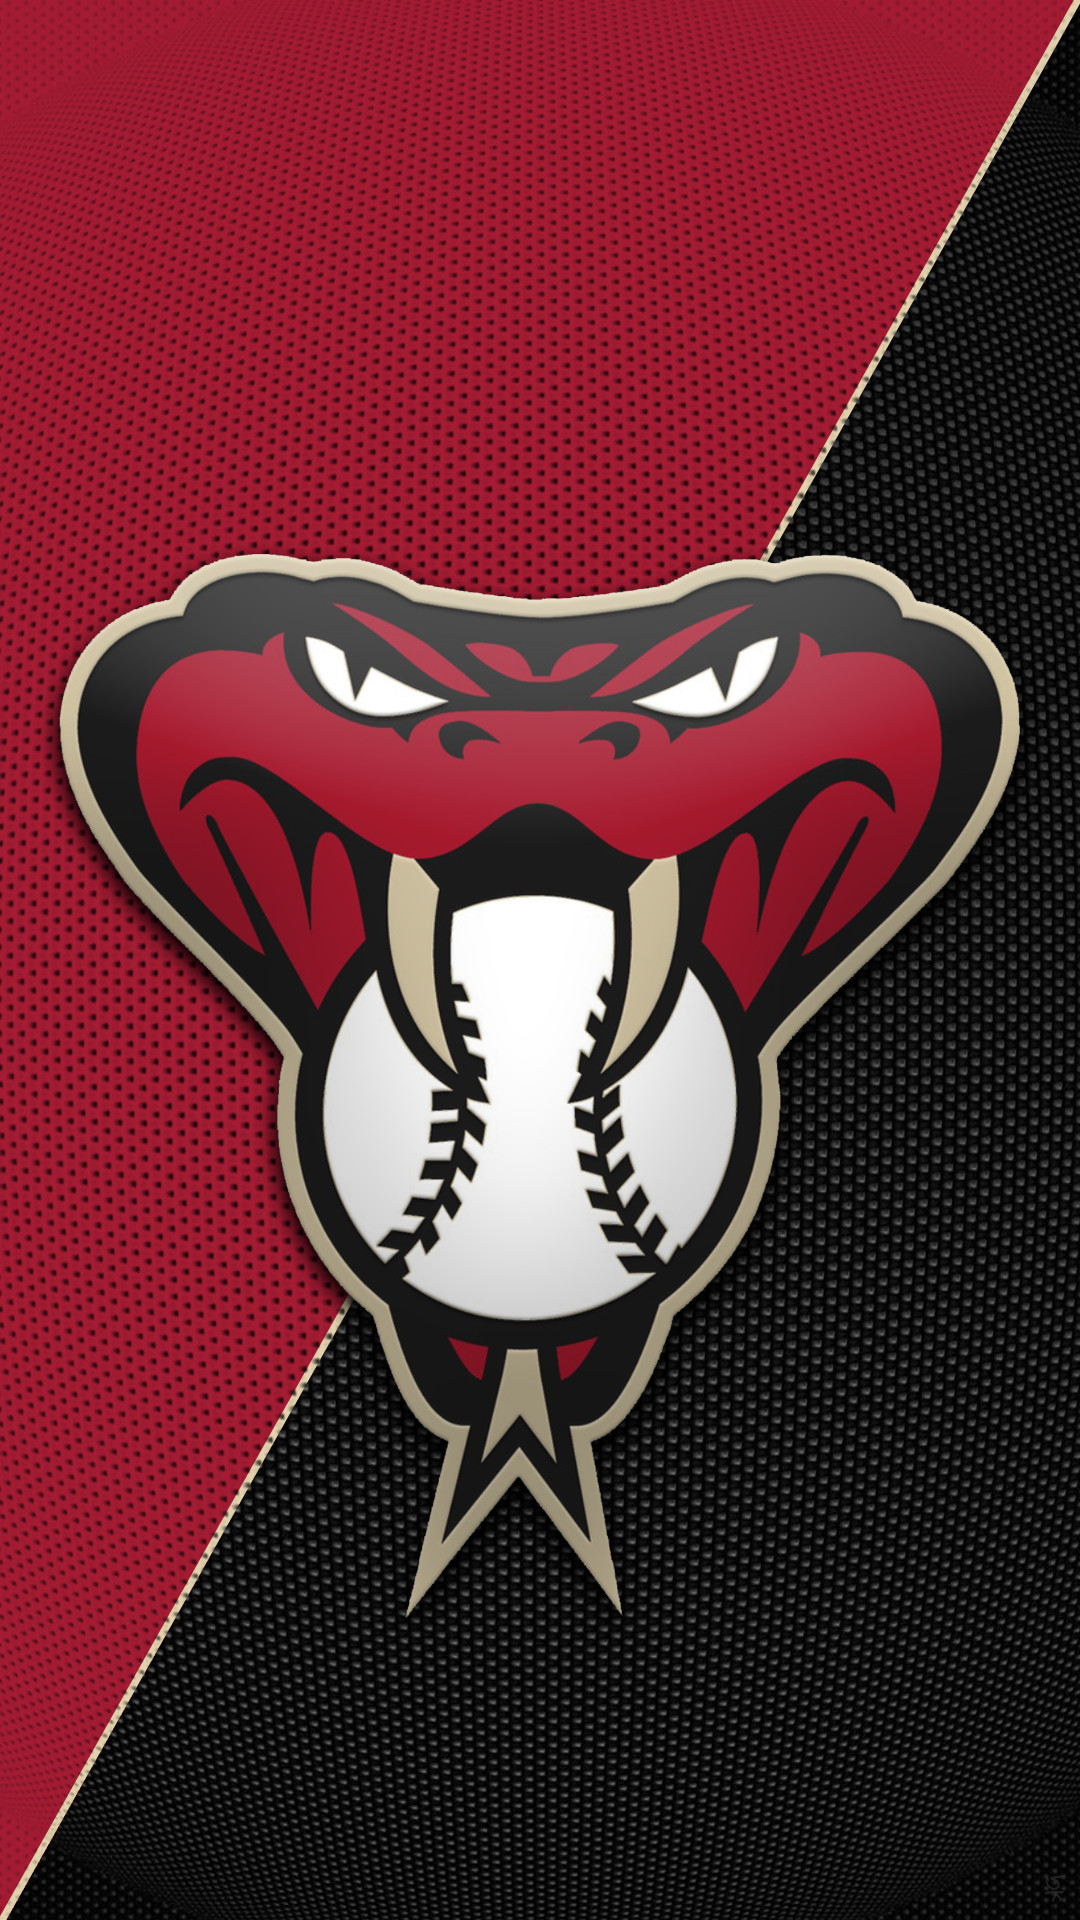 Hey Tigger can you make another Arizona Diamondbacks snakehead logo  wallpaper like you did before for me but in their old school colors of  copper/ teal …